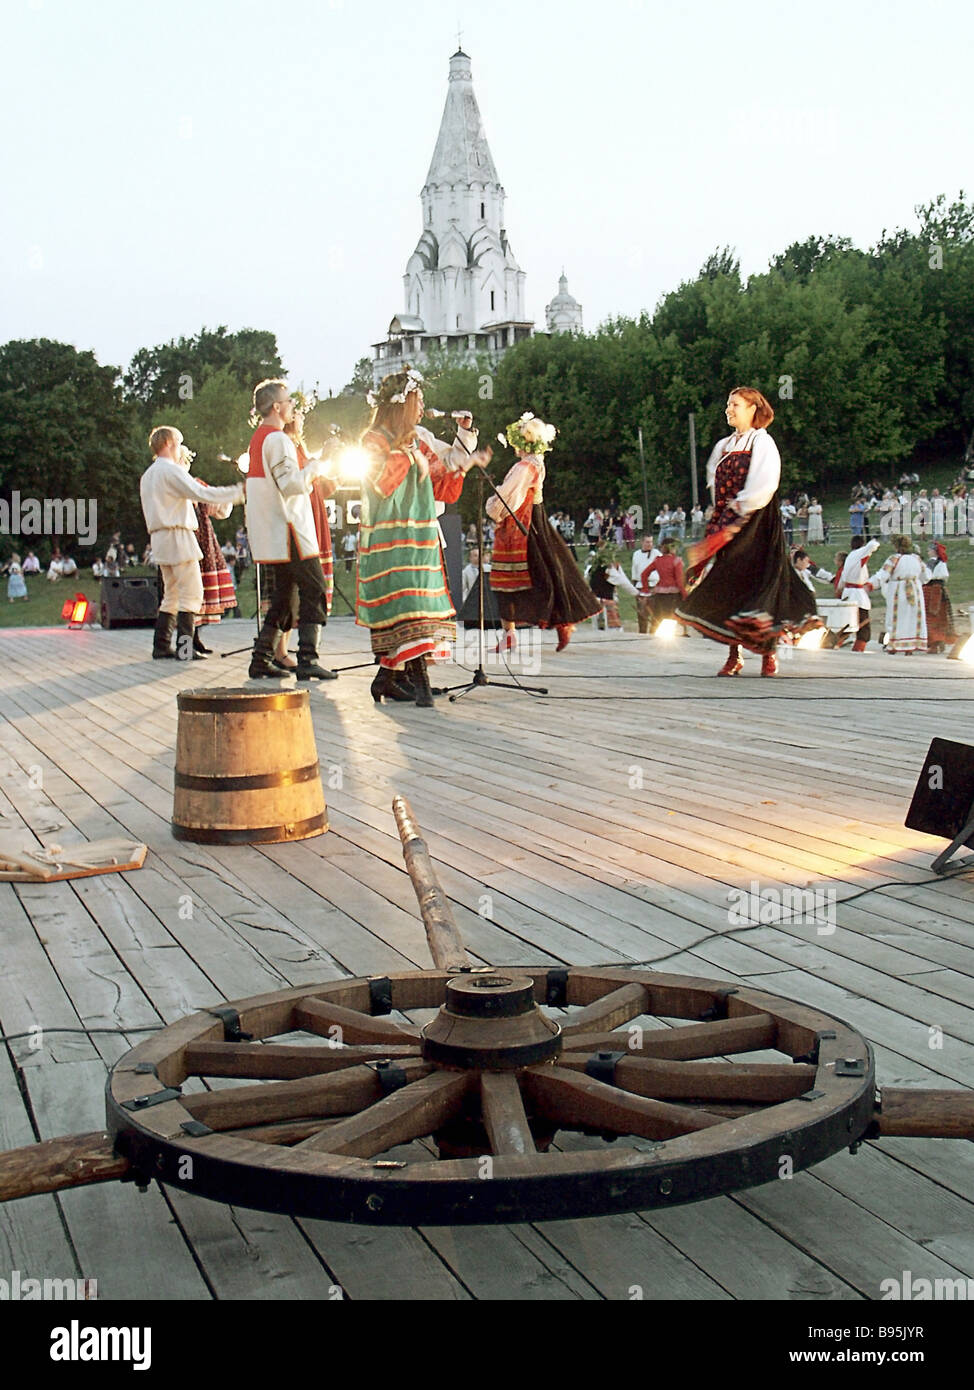 Folklore performances during Midsummer Night at the open-air museum Kolomenskoye in Moscow. - Stock Image